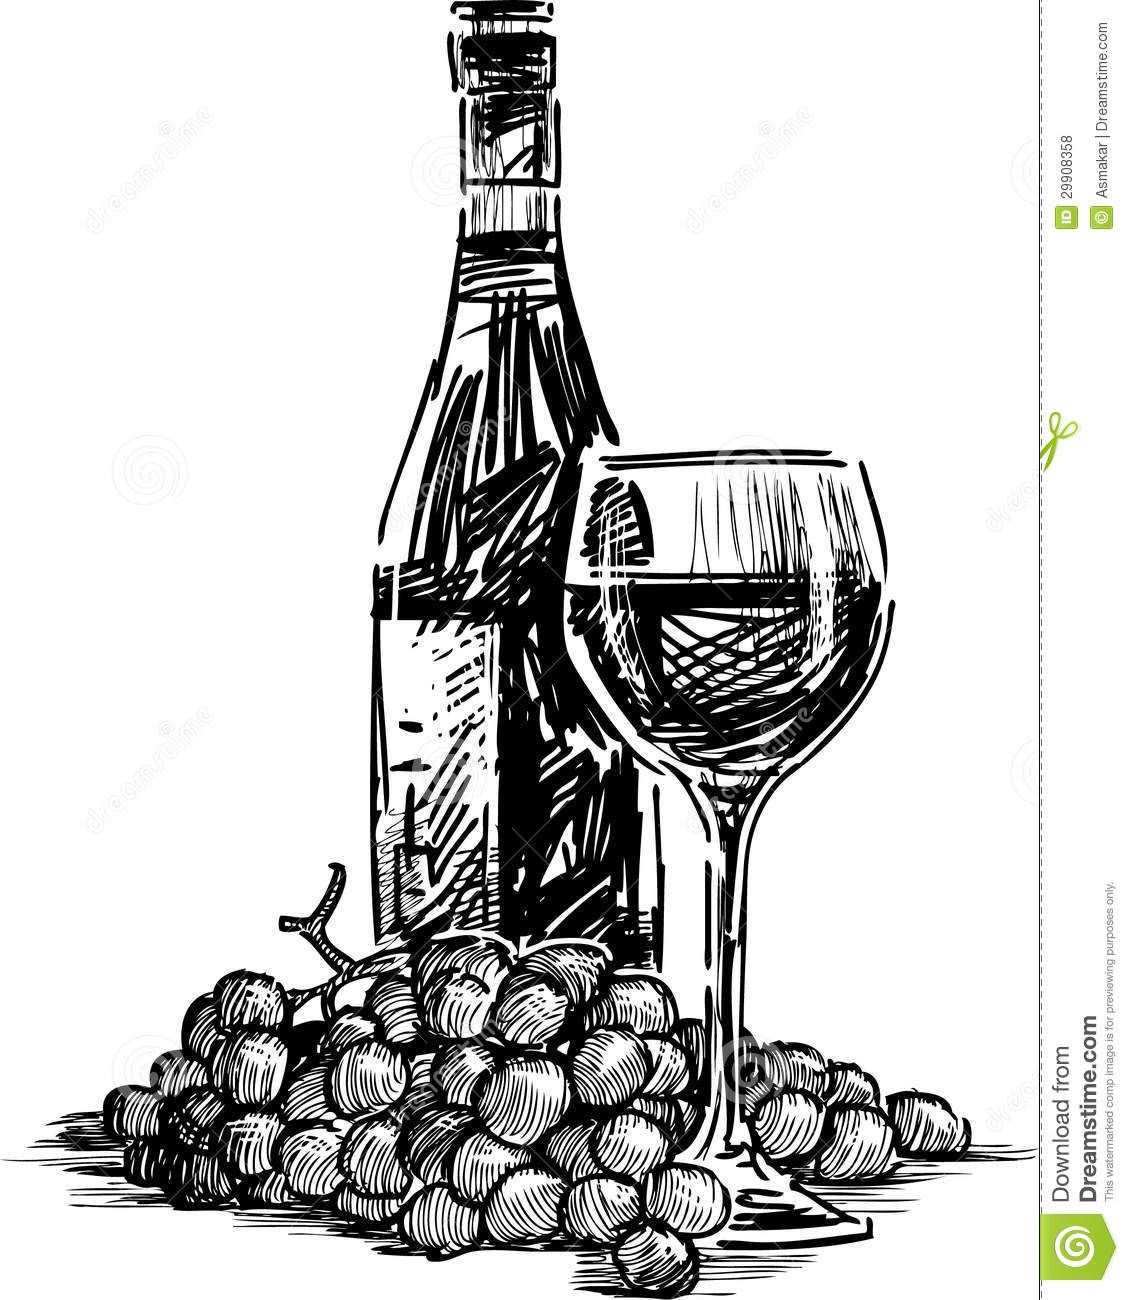 vector-drawing-bottle-wine-glass-grapes-cluster-29908358 ...